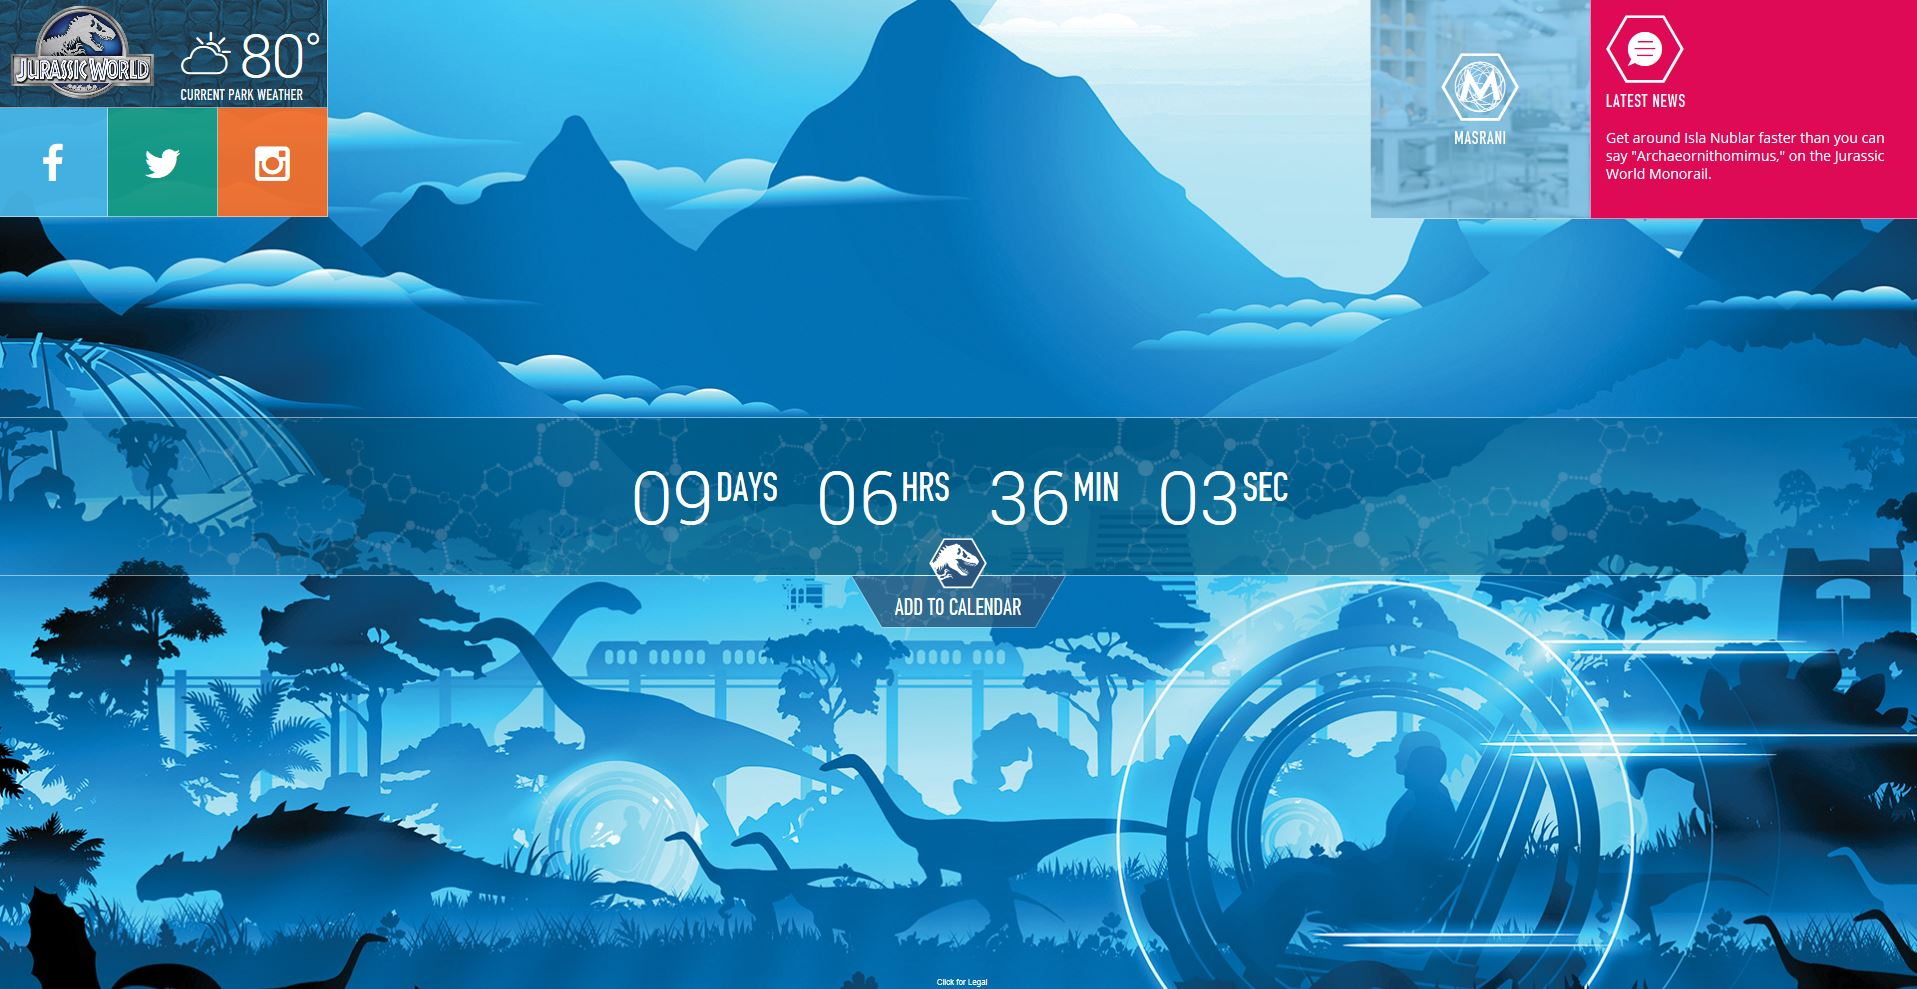 Jurassic World countdown clock Jurassic World opens website with countdown clock and photos